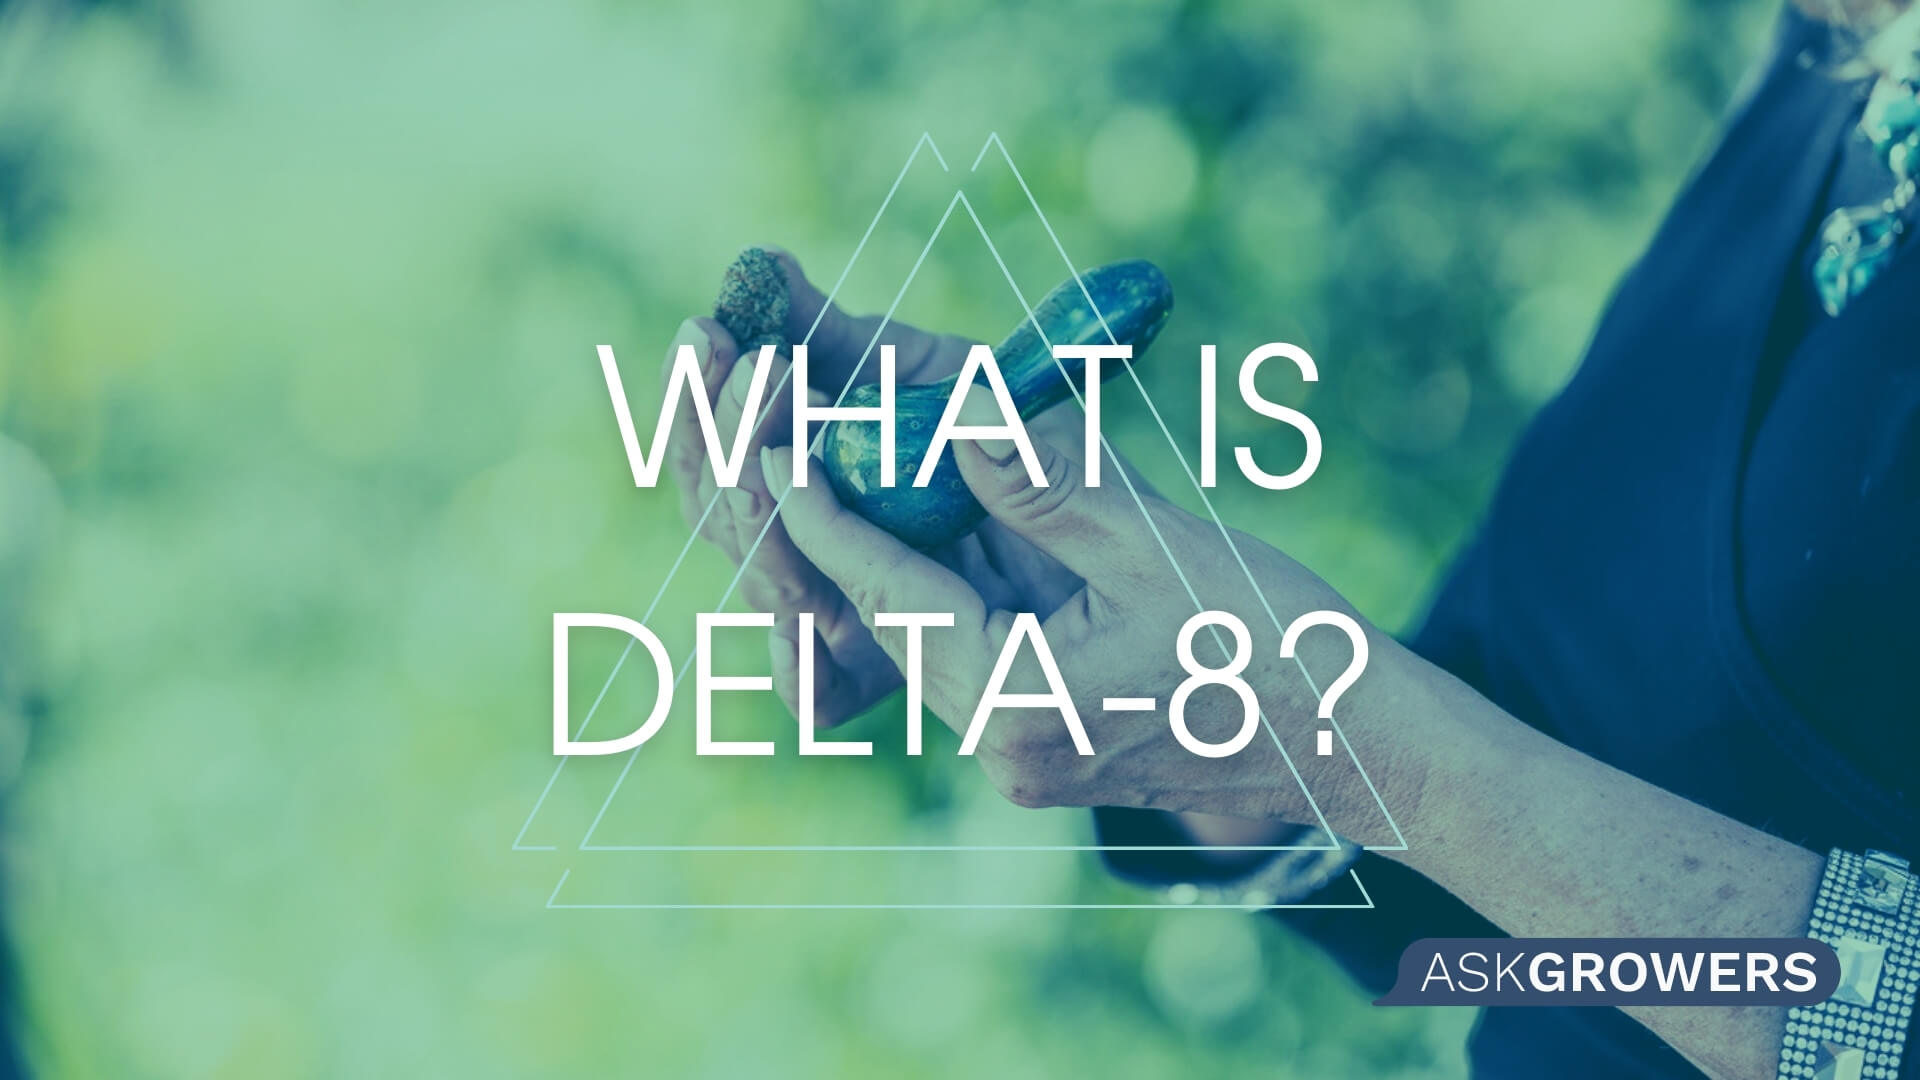 What Is Delta-8?, AskGrowers